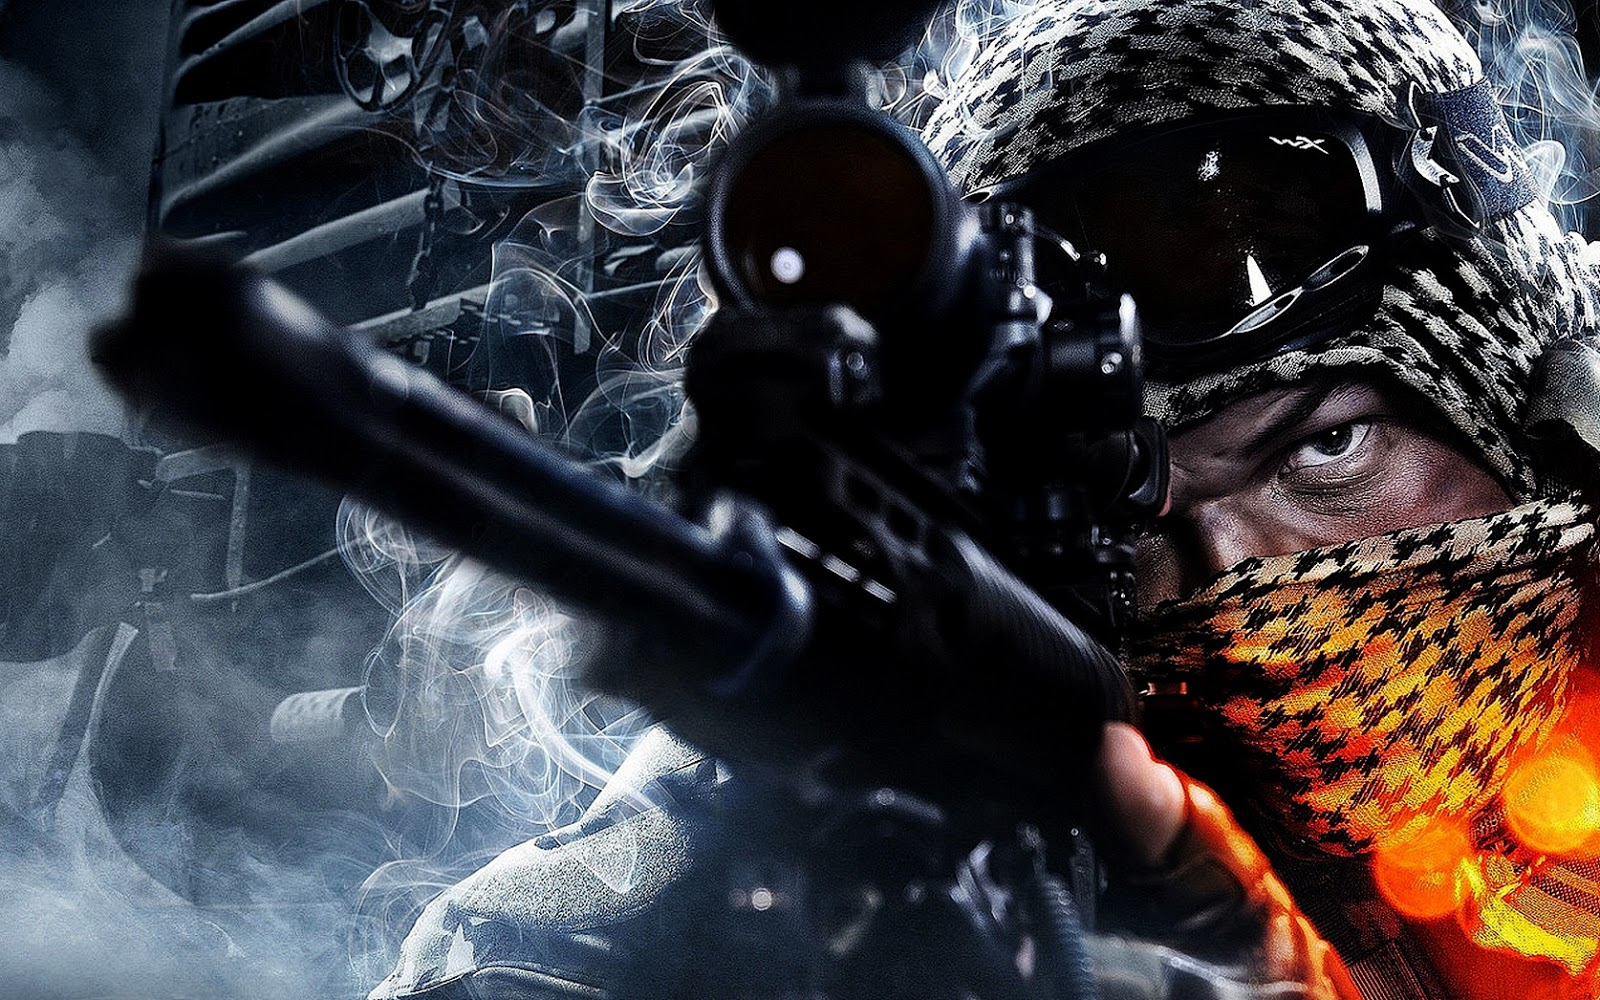 15 best sniper wallpapers from video gameswallpapers